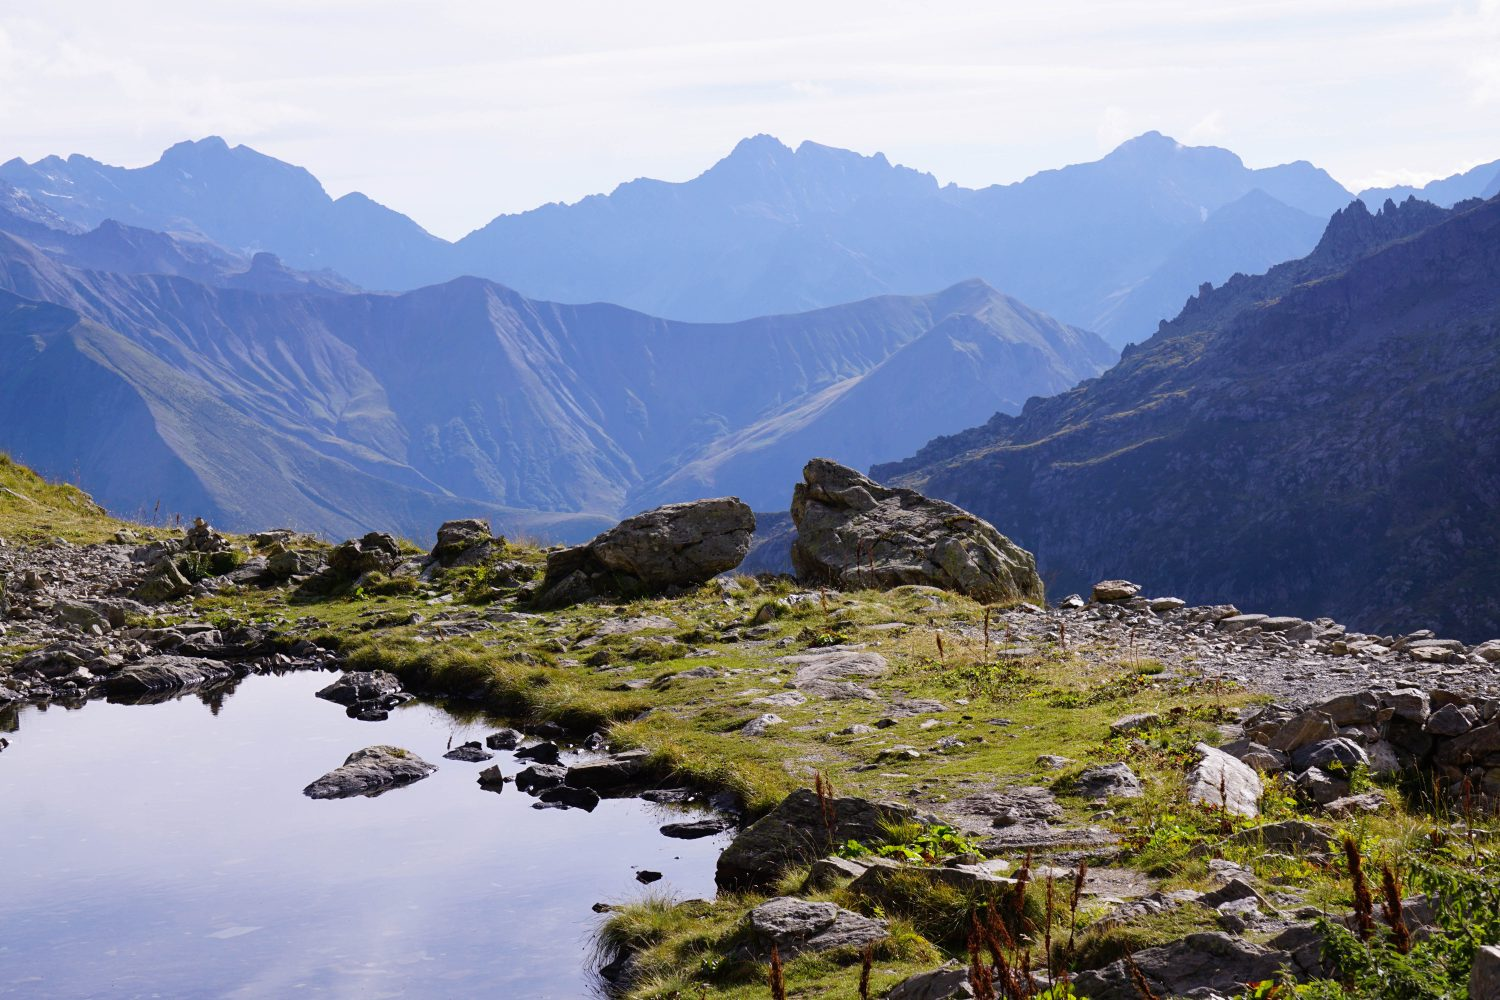 Ecrins National Park: Hiking in the French Alps